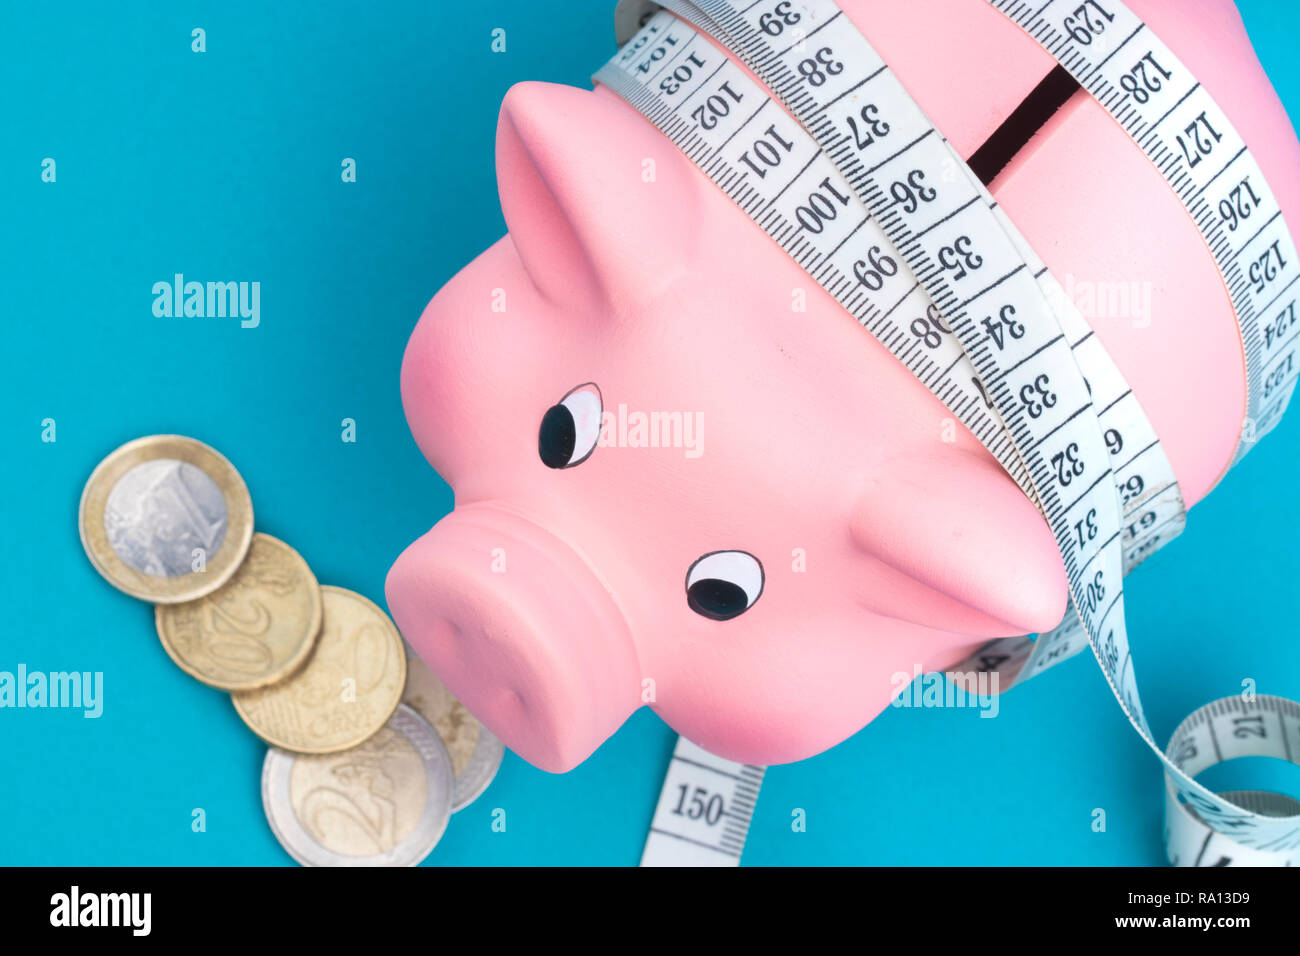 Investments and metering or counting idea. Ceramic toy pig with white flexible ruler on blue background. Financial diet concept. - Stock Image